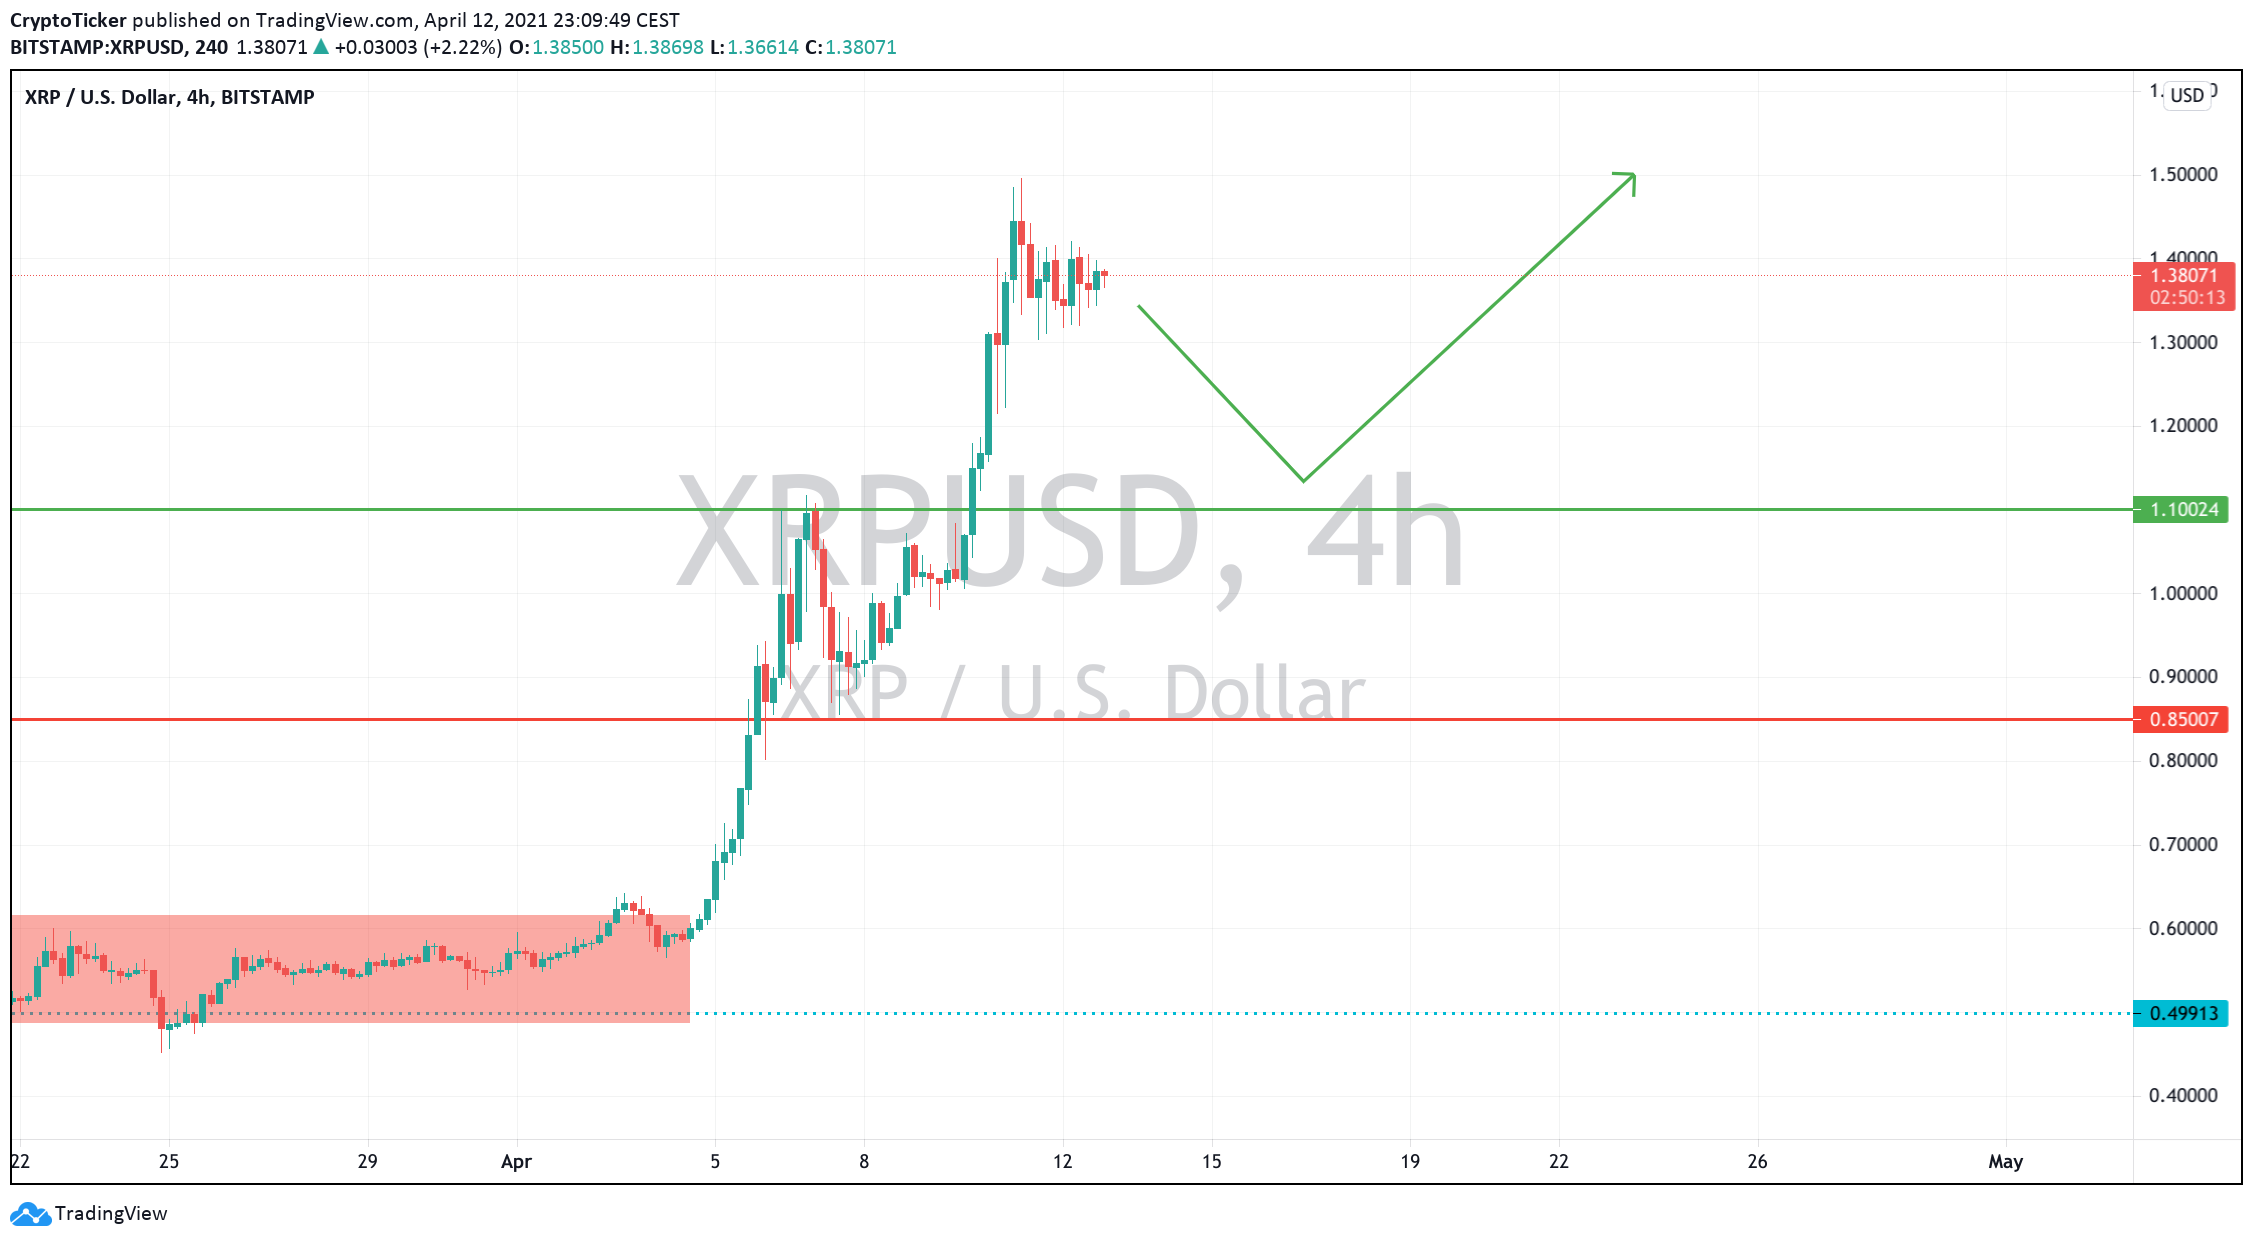 XRP/USD 4-hour chart showing the snowball effect upwards after an extended consolidation for XRP